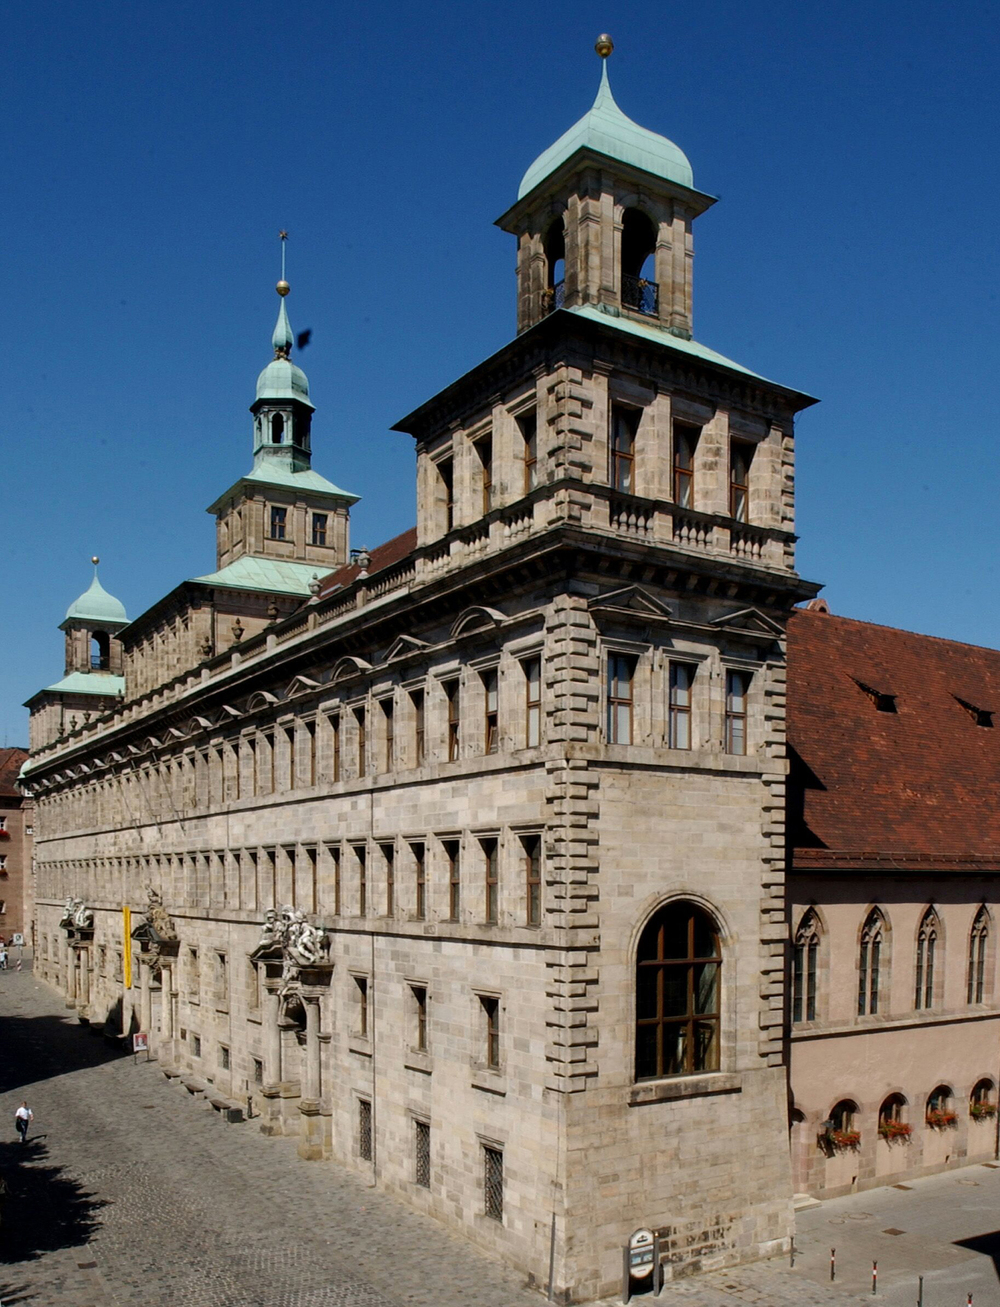 1571-1620; Jakob Wolff the Younger, architect